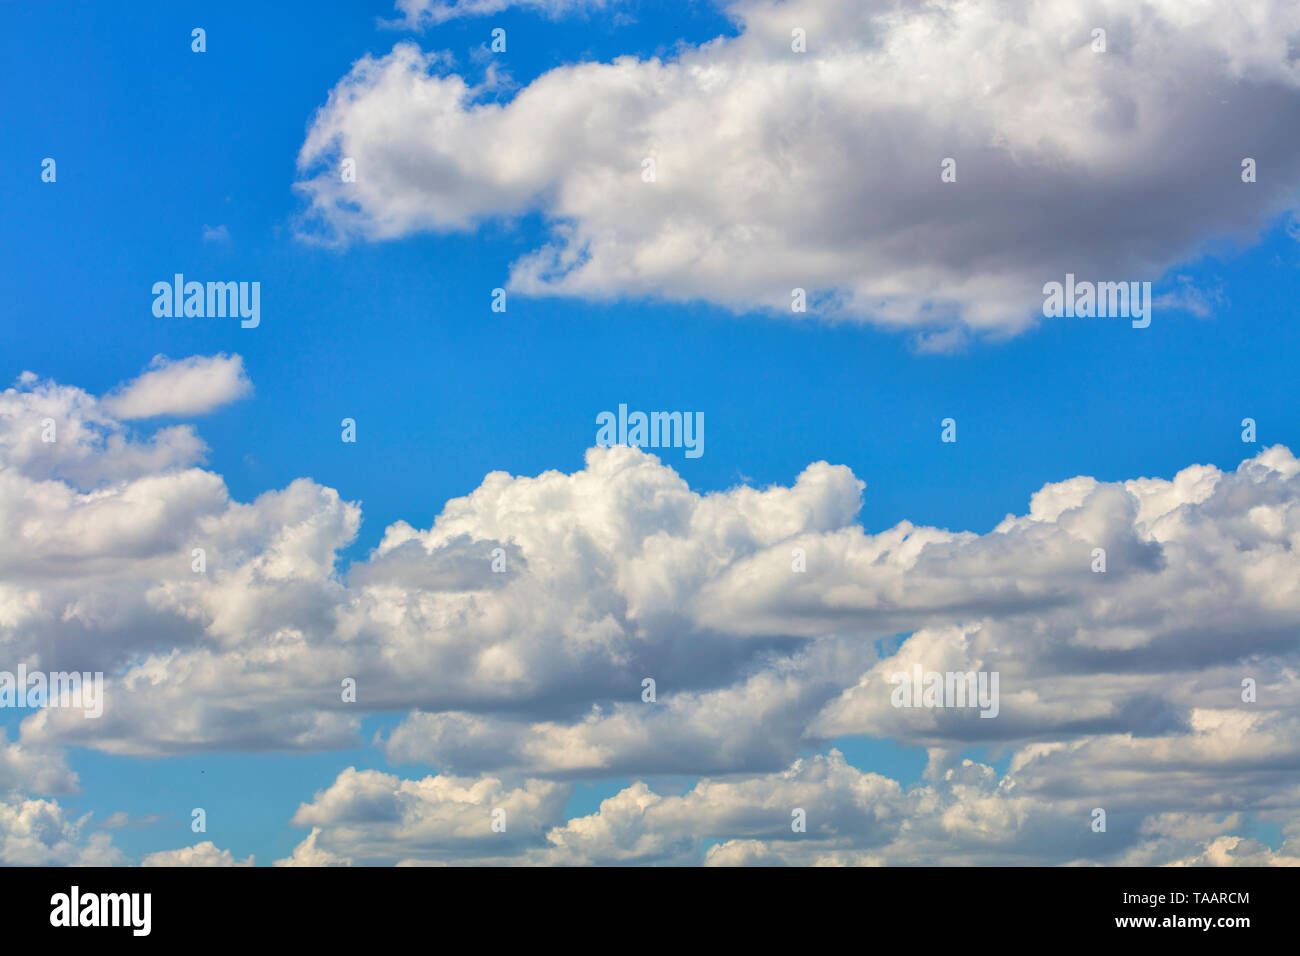 Cloudy blue sky with white and gray fluffy clouds. - Stock Image